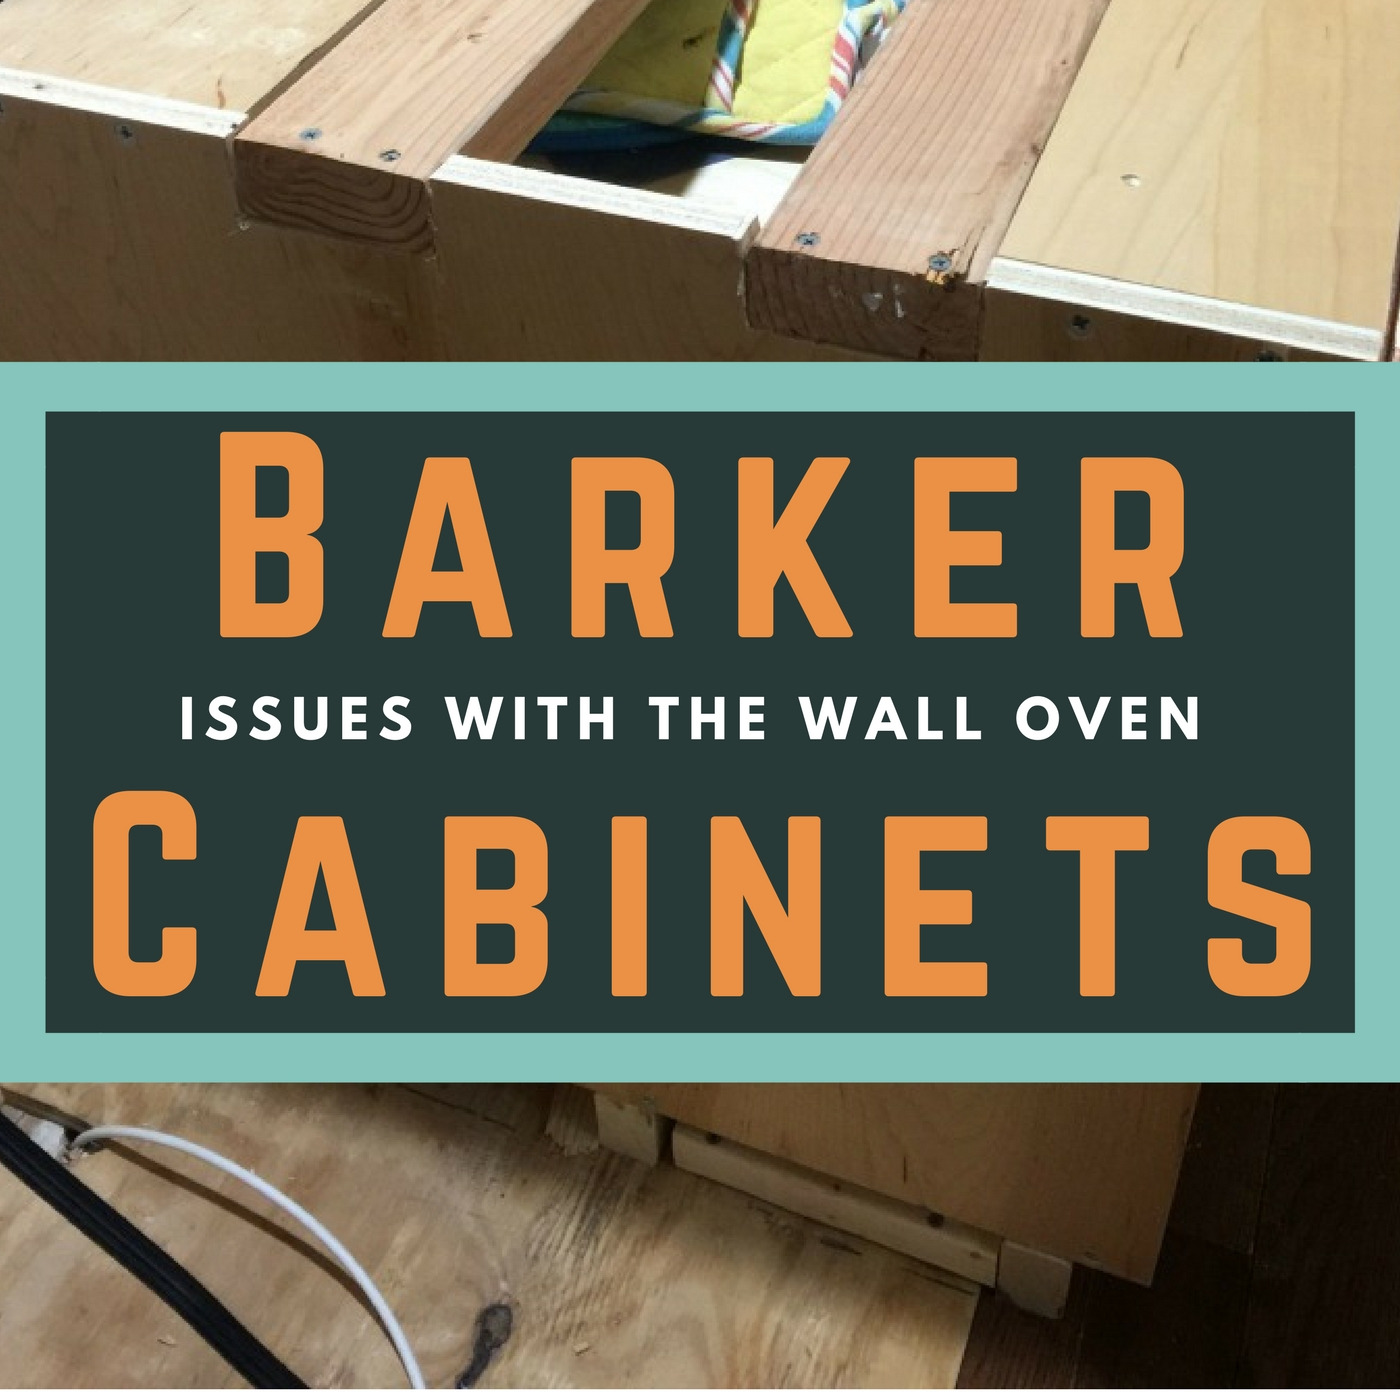 Barket Cabients -- issues with the wall oven